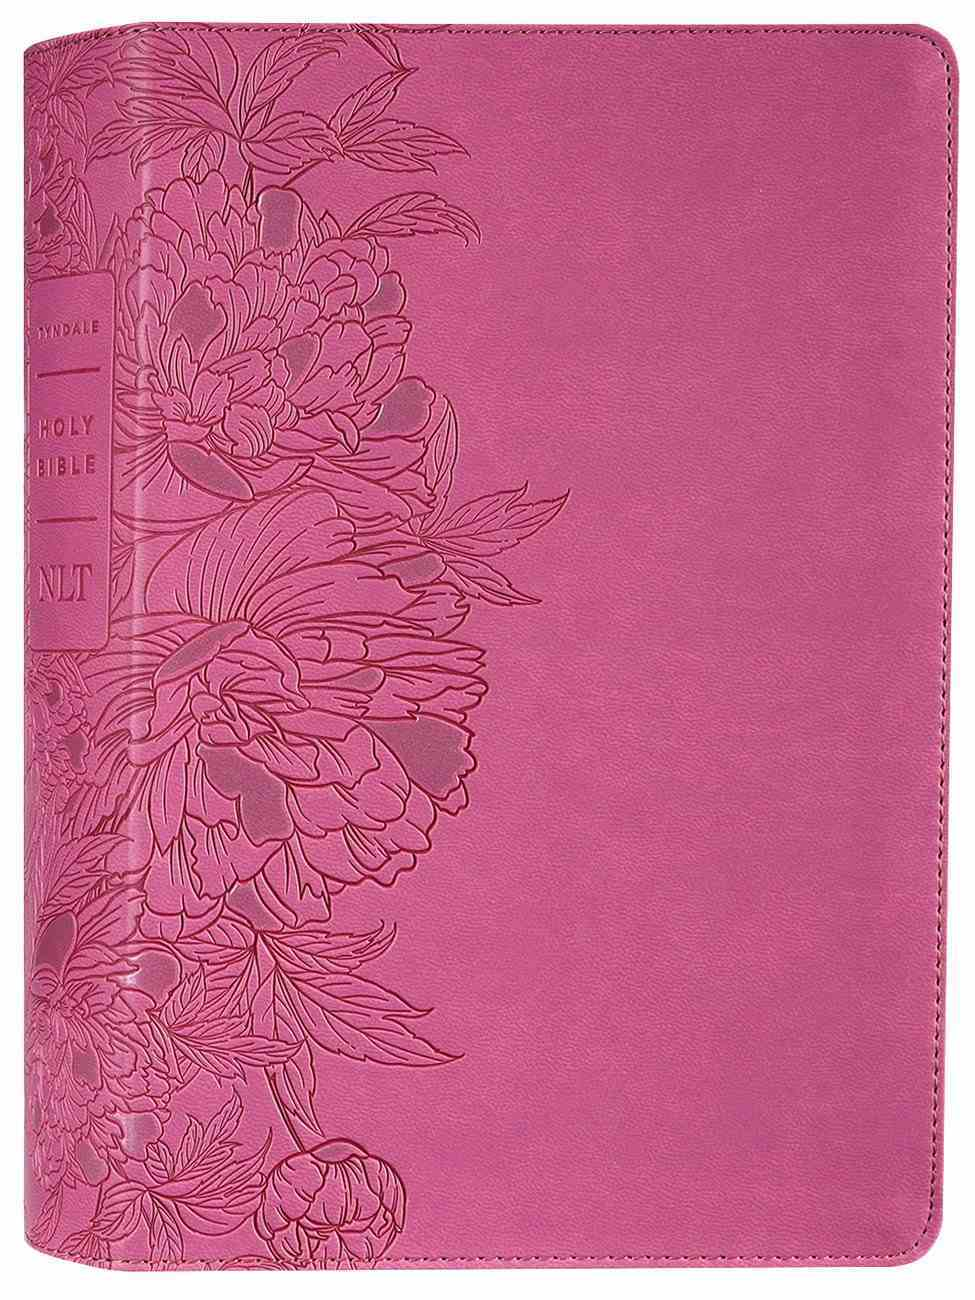 NLT Personal Size Giant Print Bible Filament Enabled Edition Peony Pink (Red Letter Edition) Imitation Leather